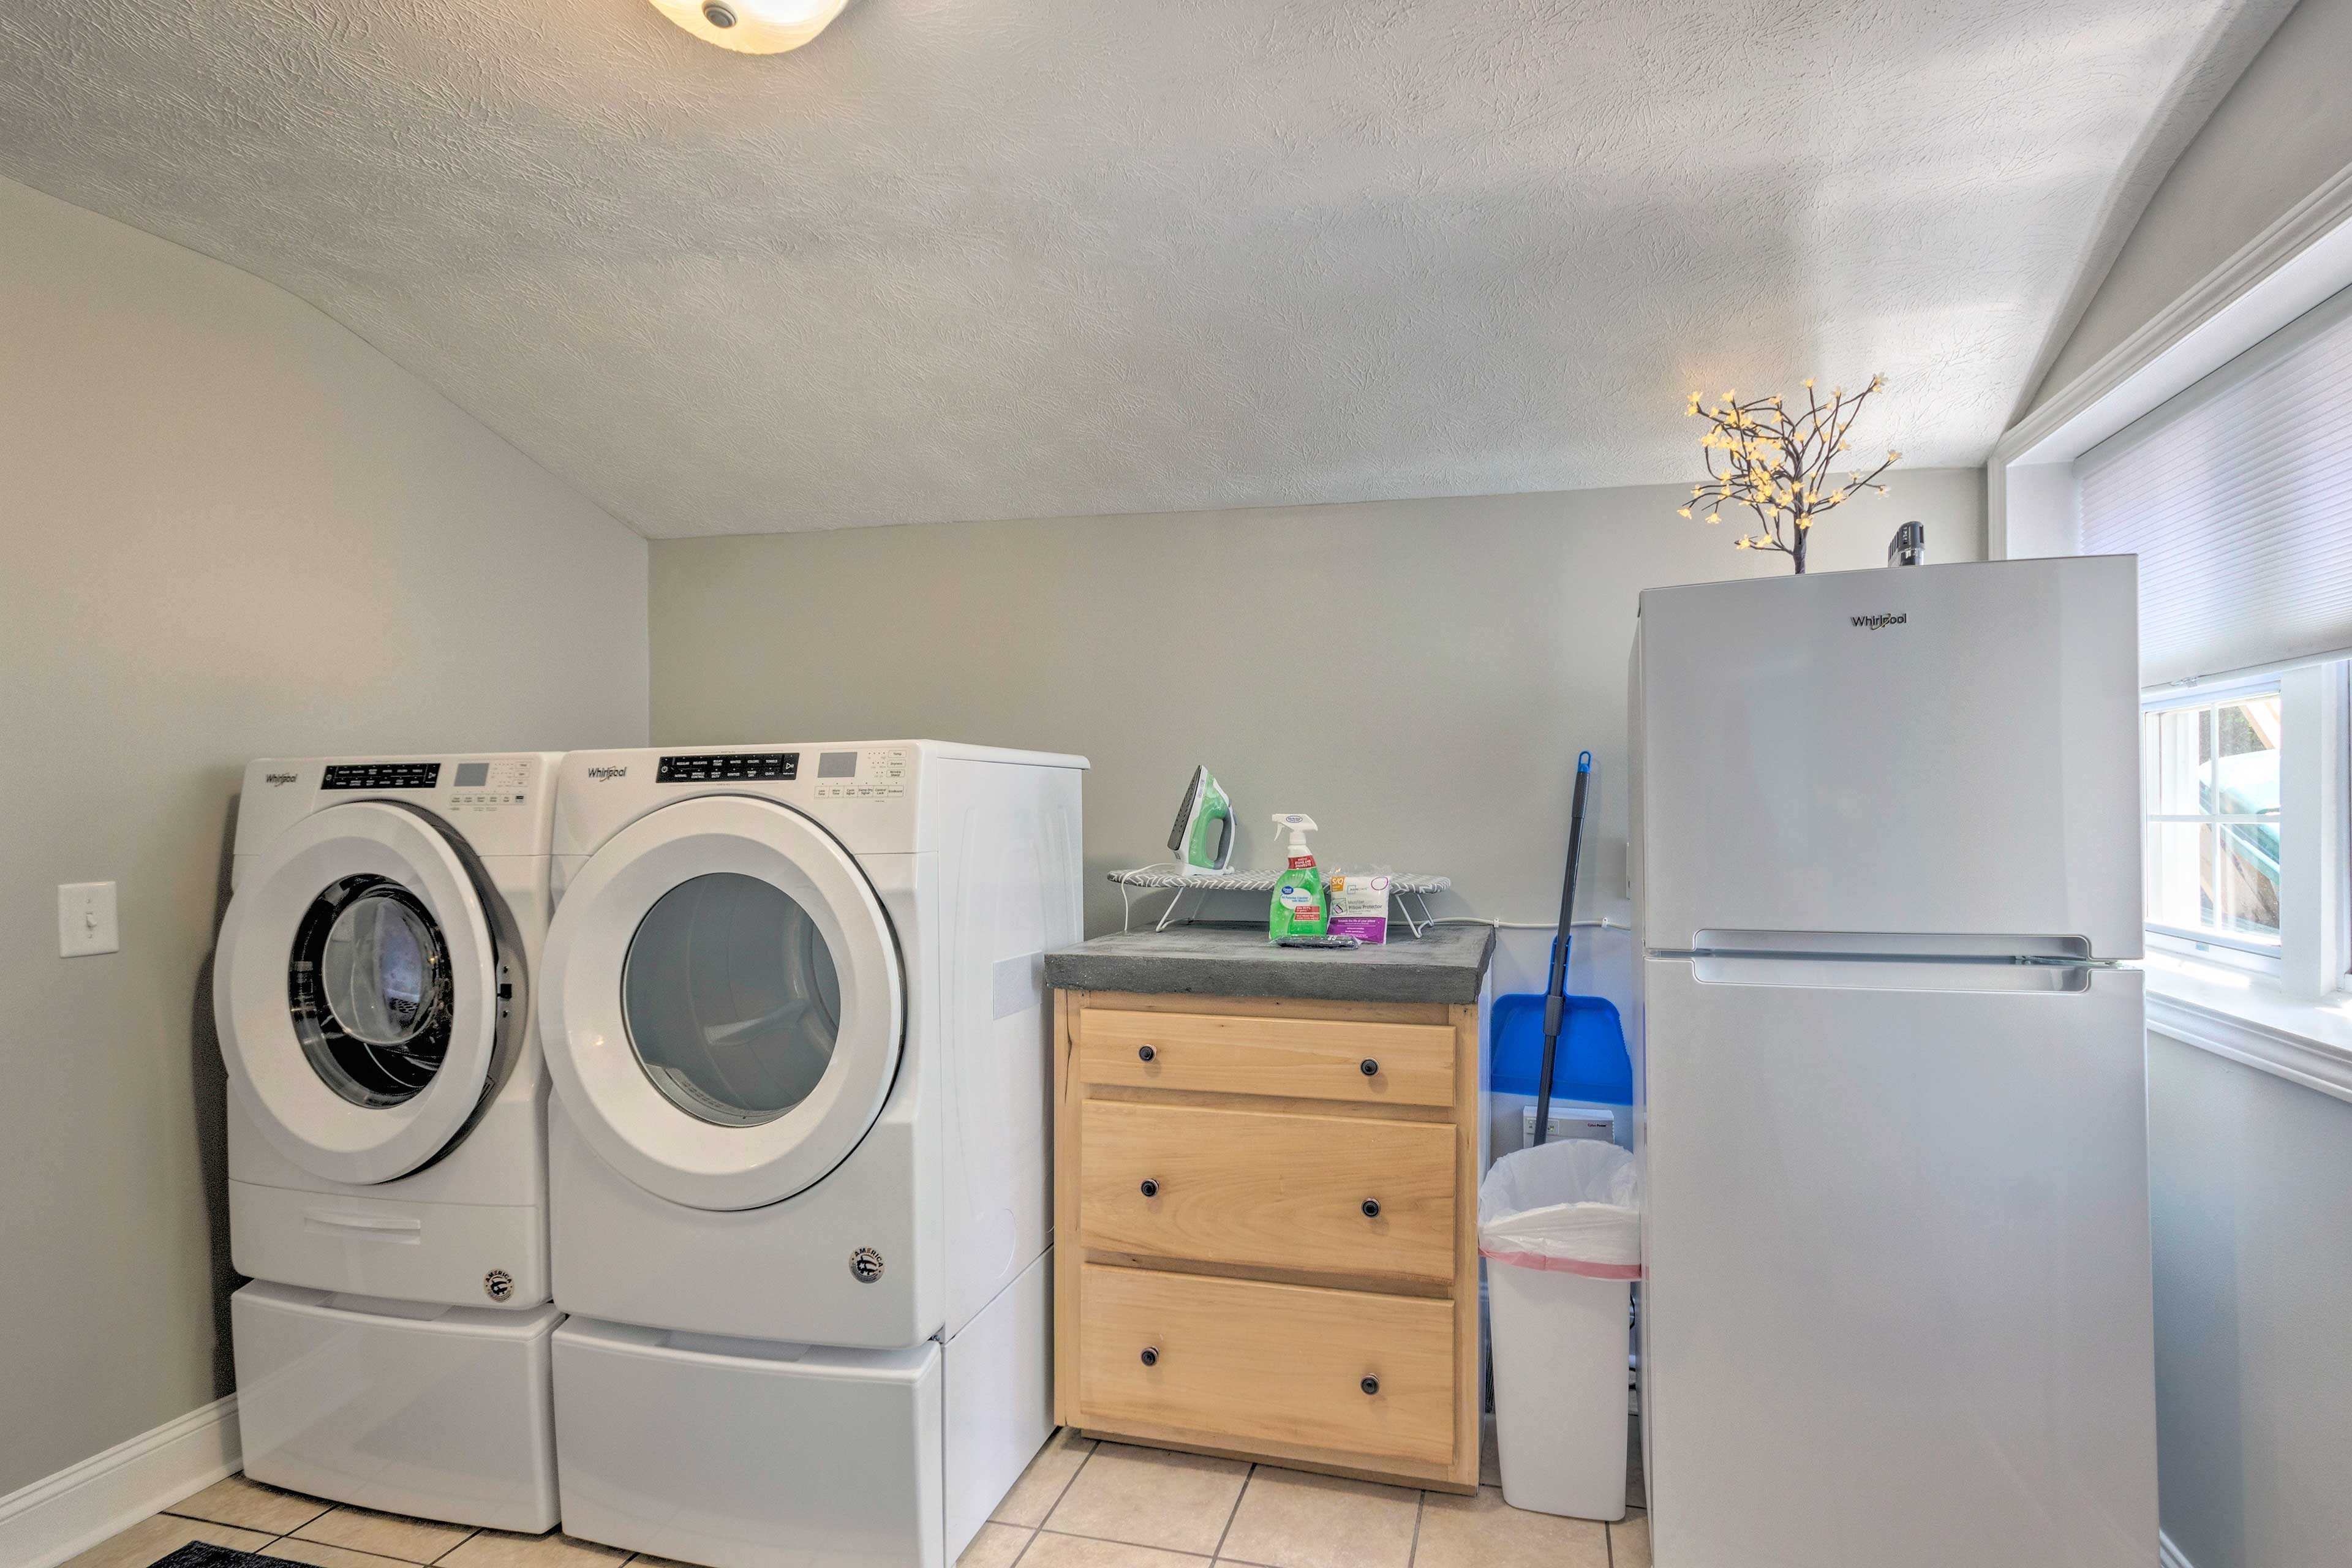 In-unit laundry units are provided for your stay.